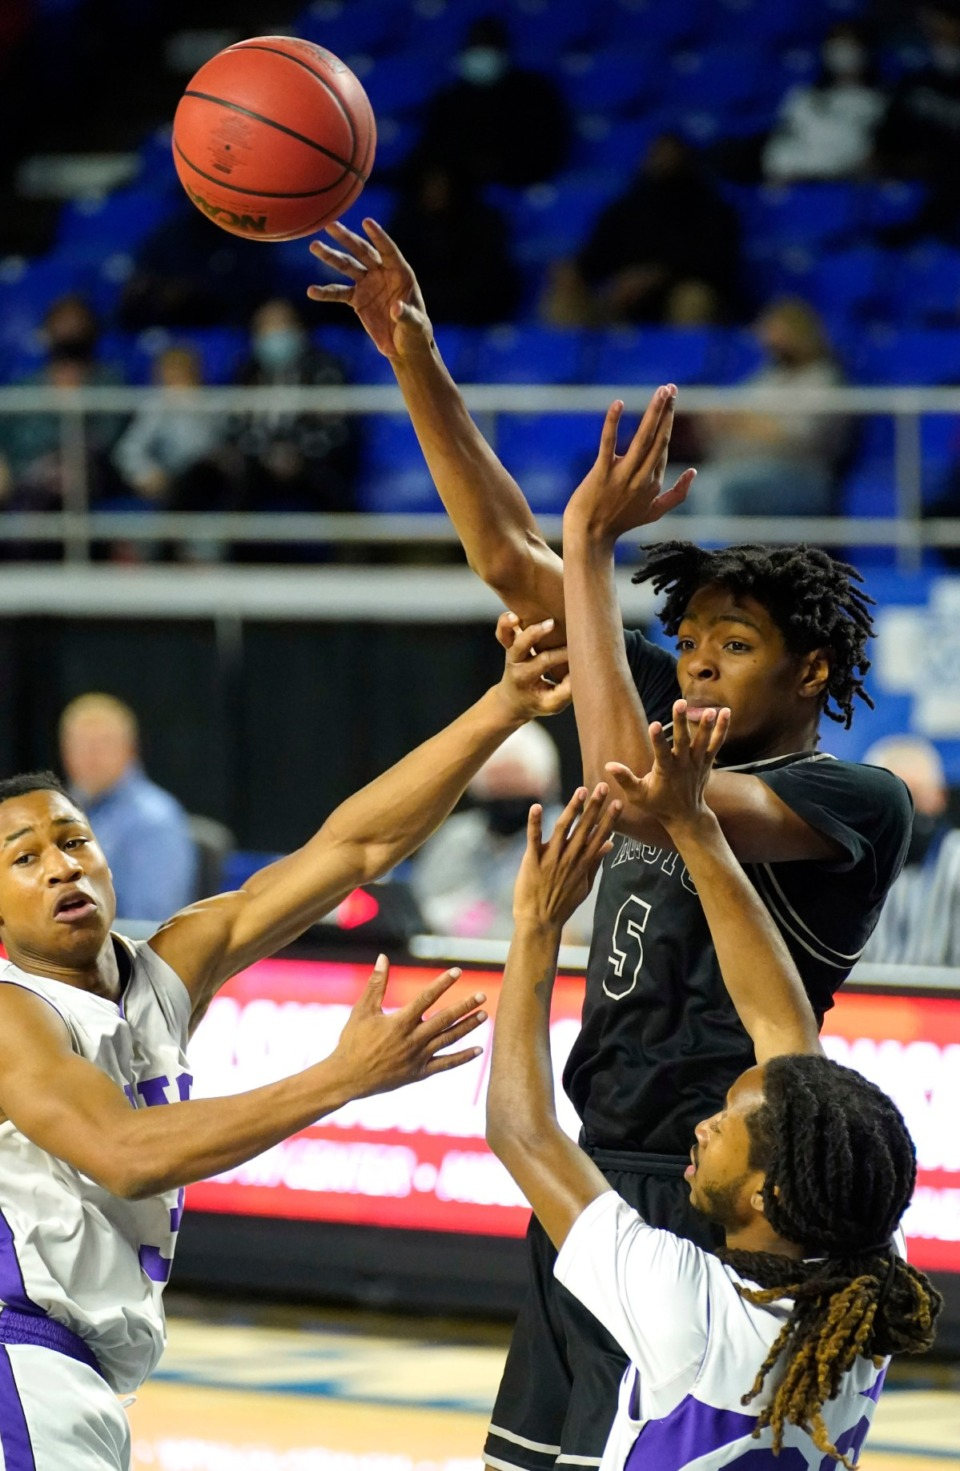 <strong>Houston&rsquo;s Jonathan Lawson (5) passes as Houston plays Clarksville&nbsp;at the Division I Class AAA quarterfinal game on March 18 in Murfreesboro, Tennessee.</strong> (Larry McCormack/Special to The Daily Memphian)